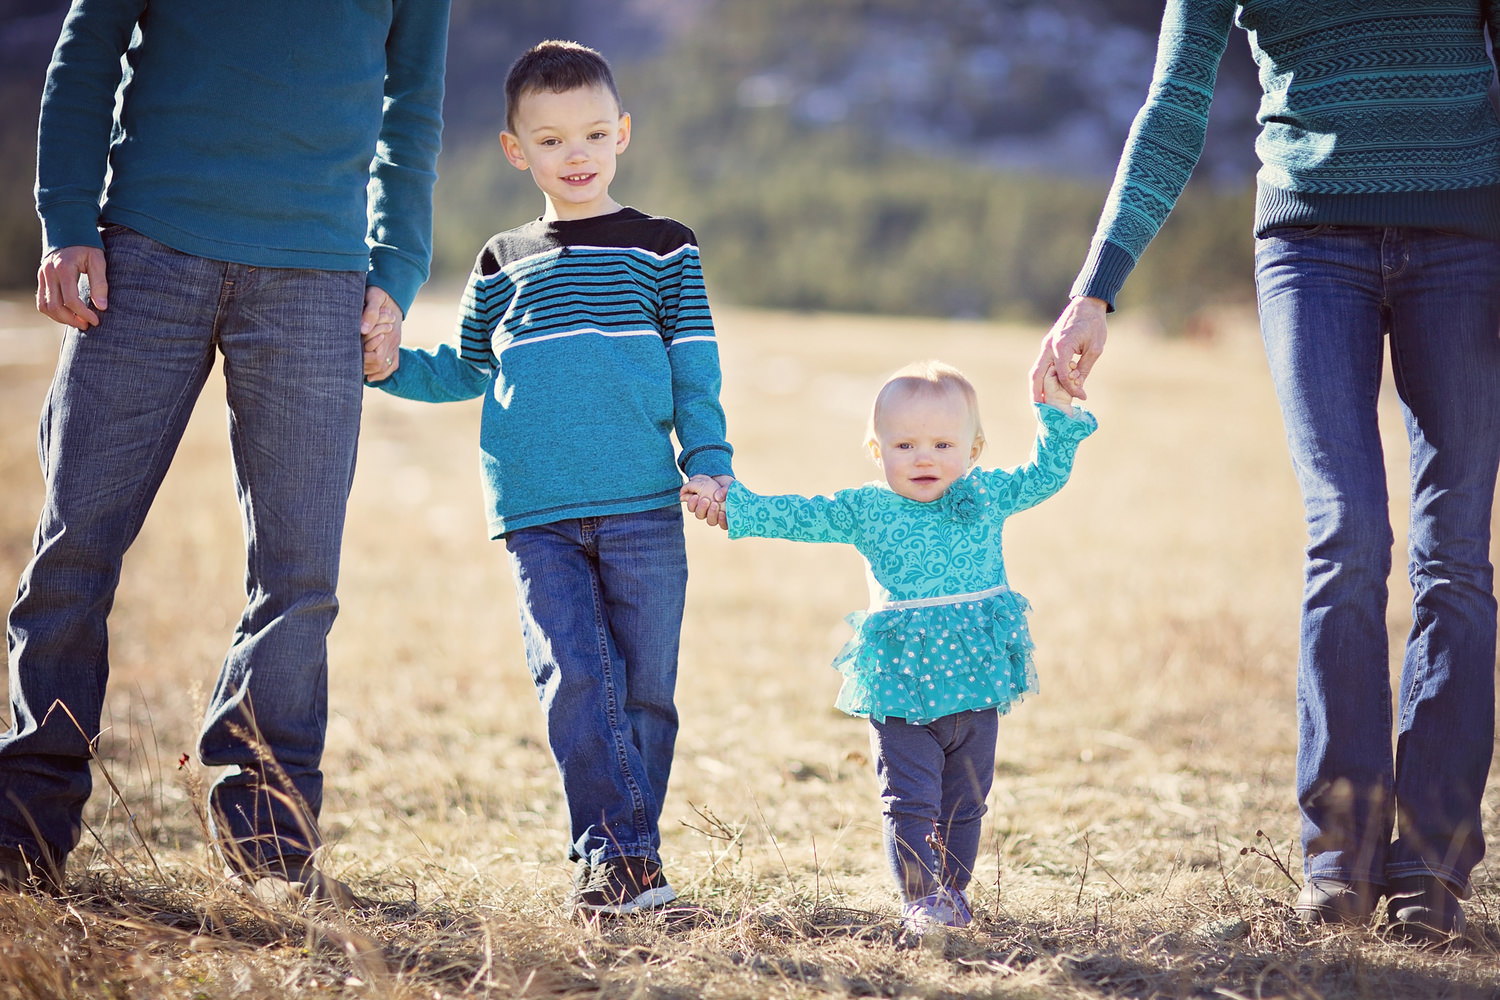 Parents just out of frame holding hands of kids all with coordinated colors